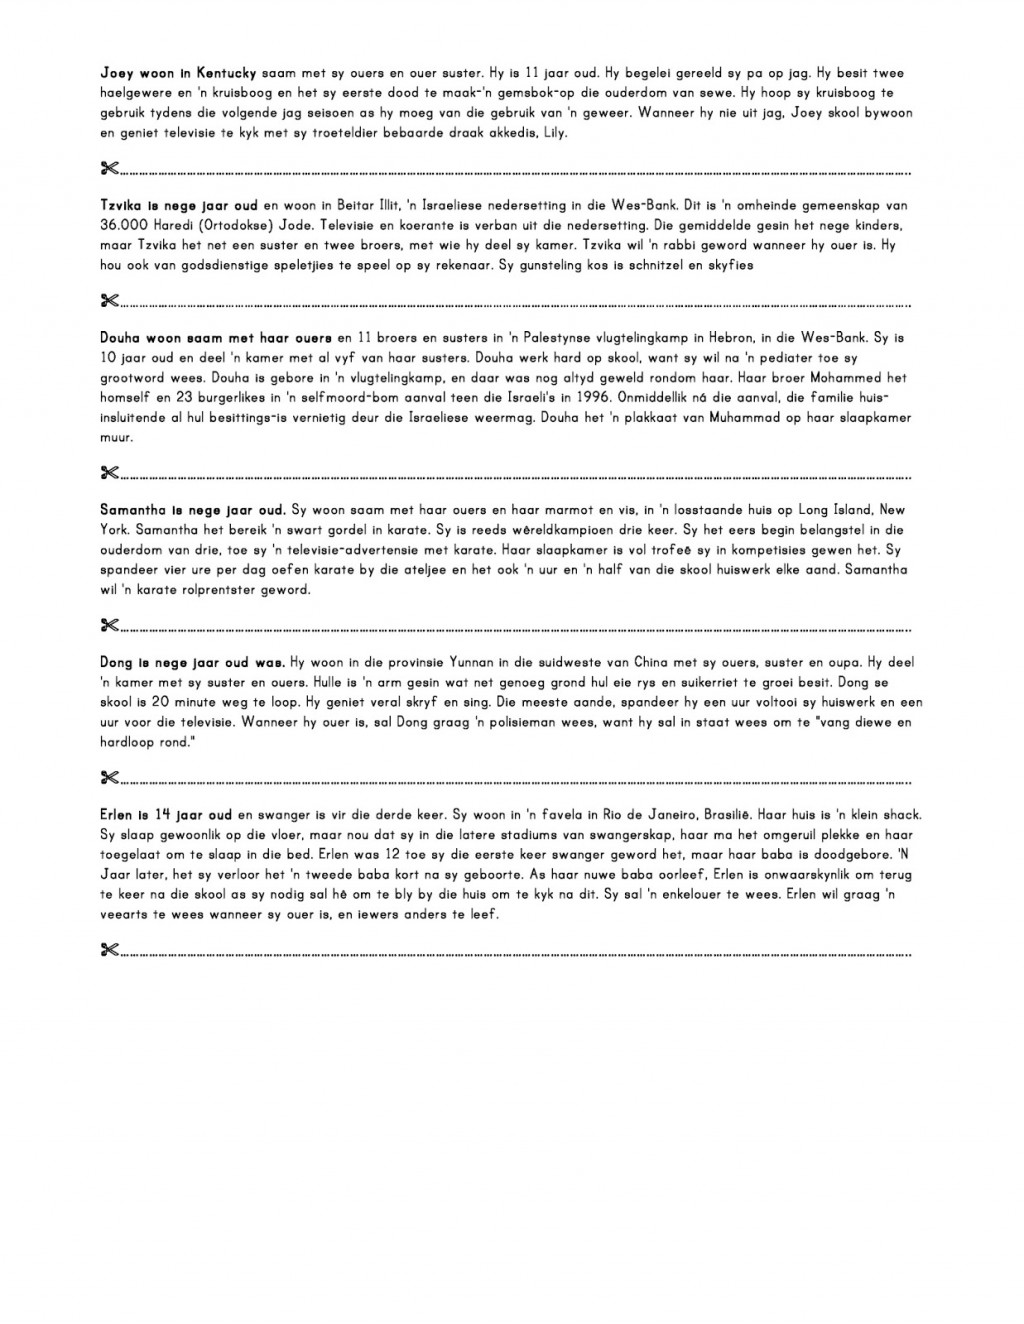 016 Essay Example Fototext Page Jpg National Junior Honor Society Unusual Samples Large